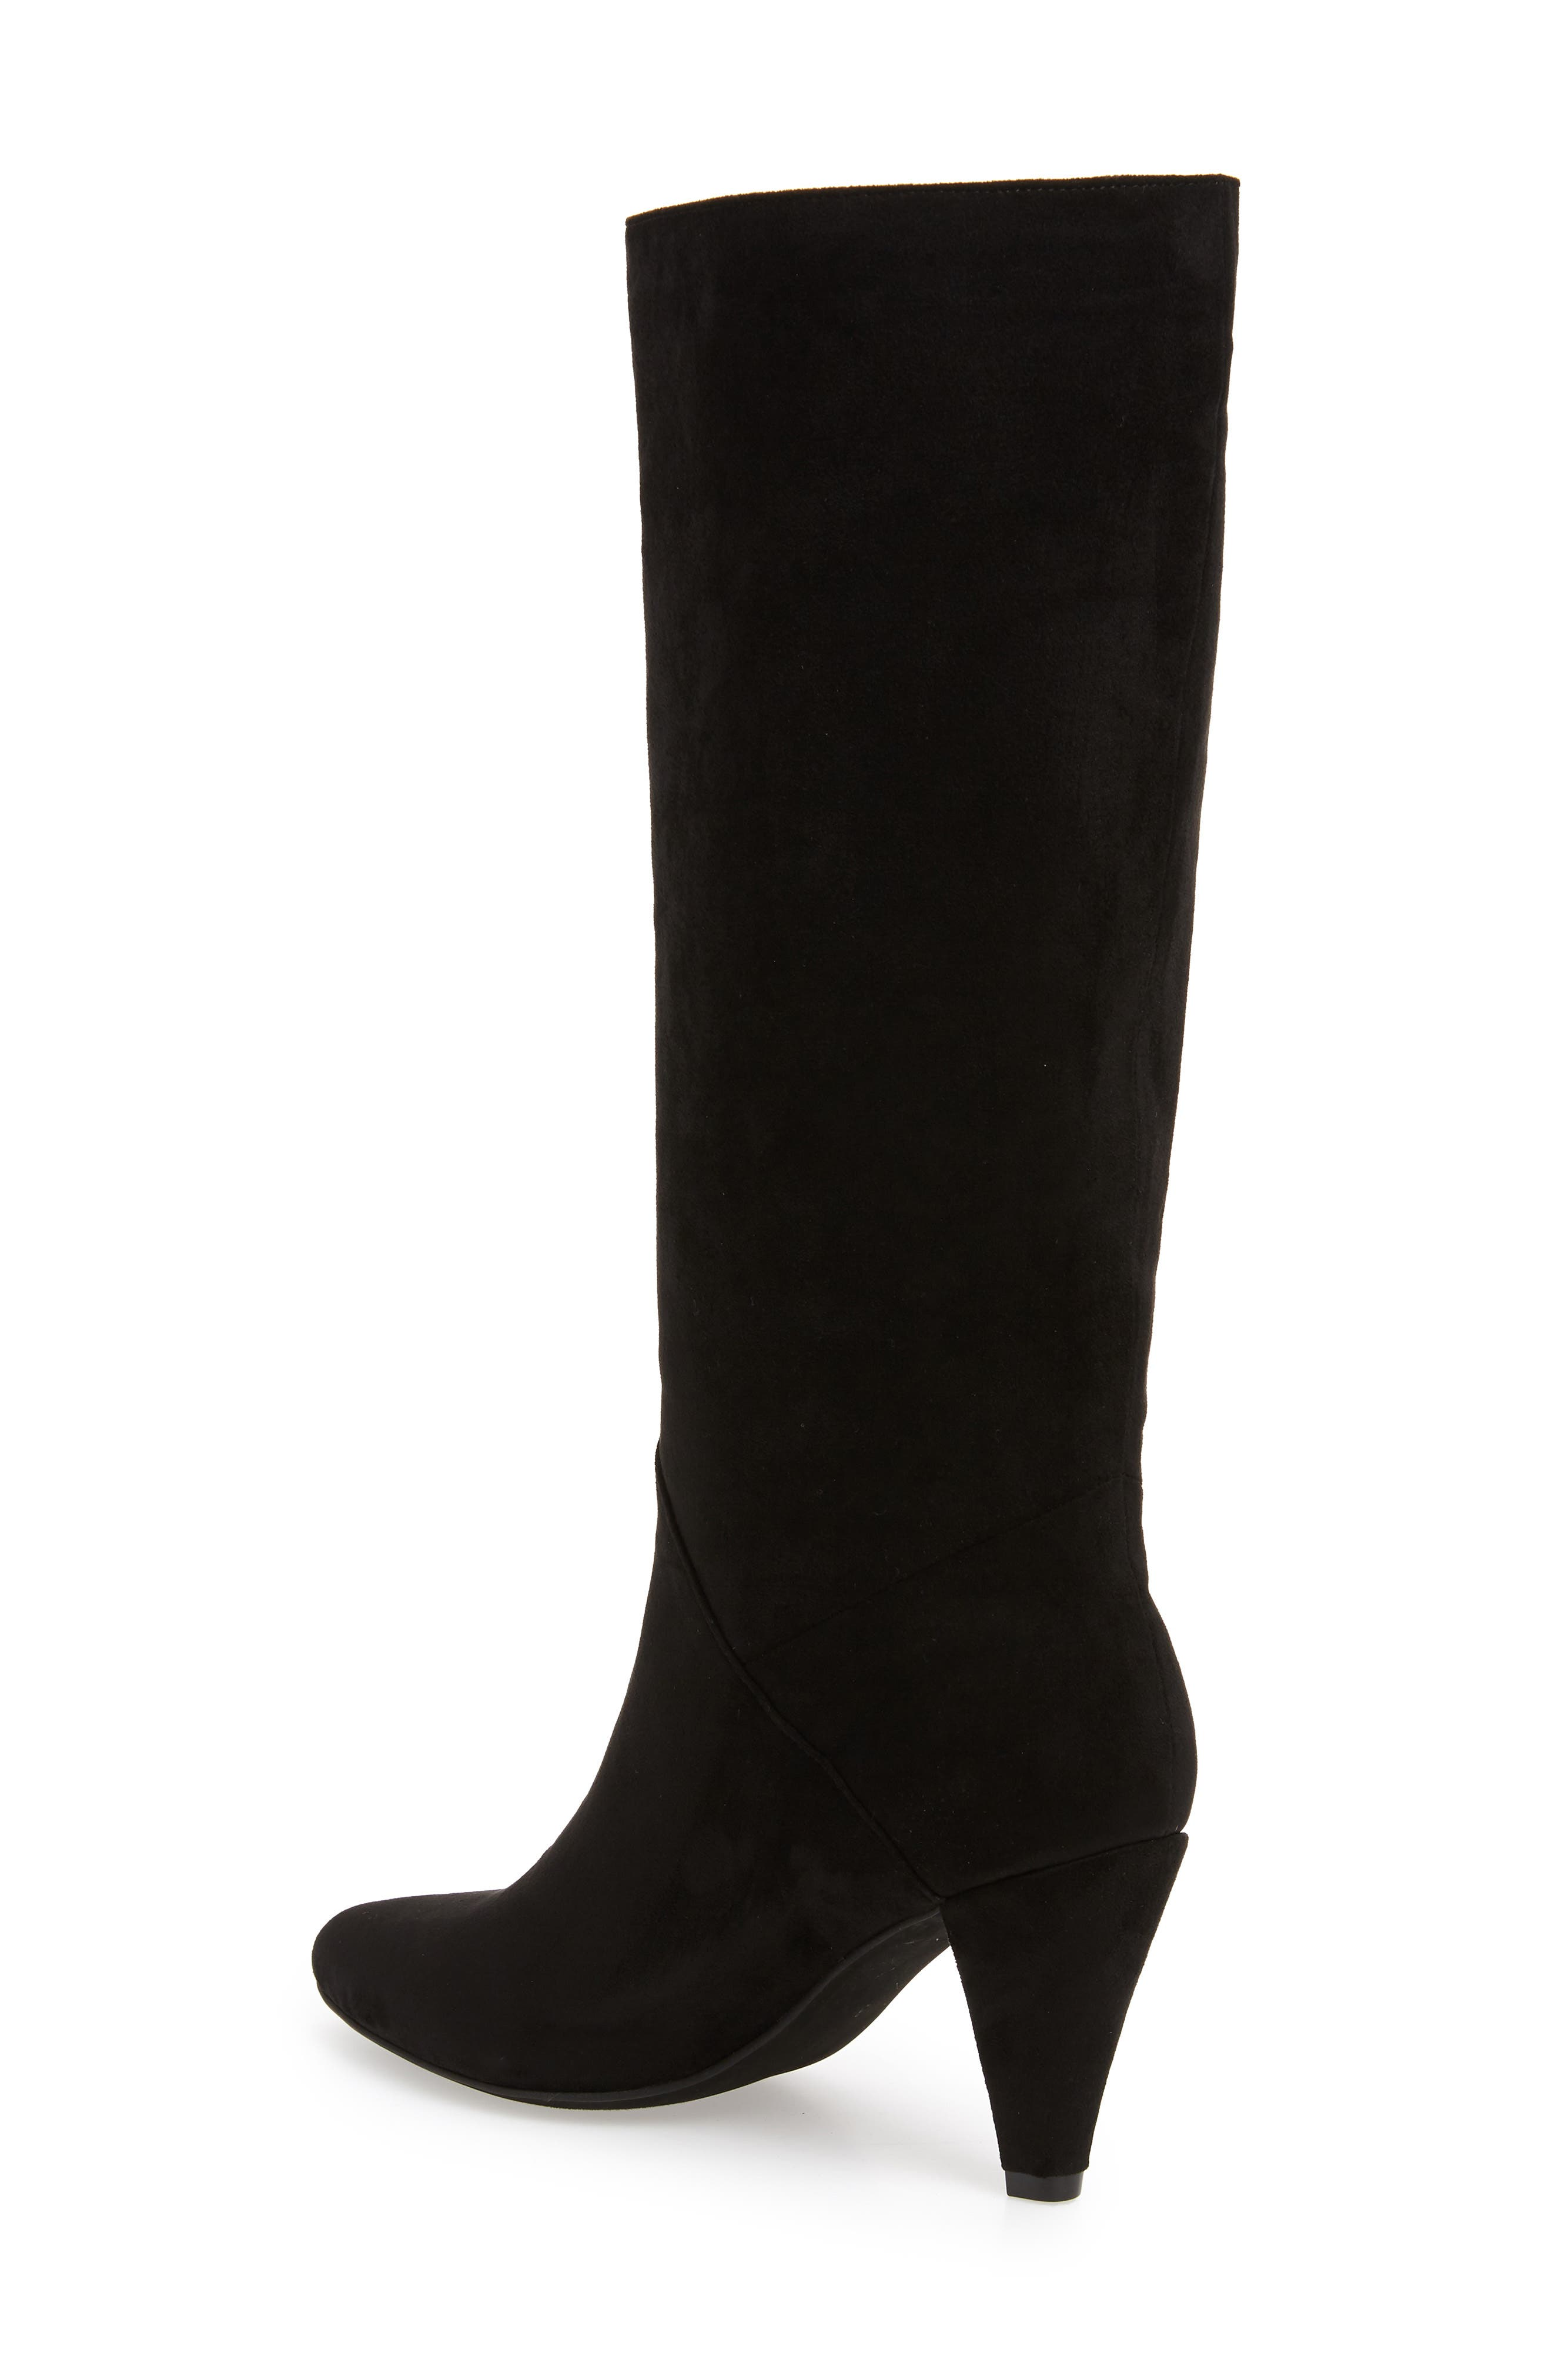 Jeffery Campbell Candle Knee High Boot,                             Alternate thumbnail 2, color,                             BLACK FAUX SUEDE